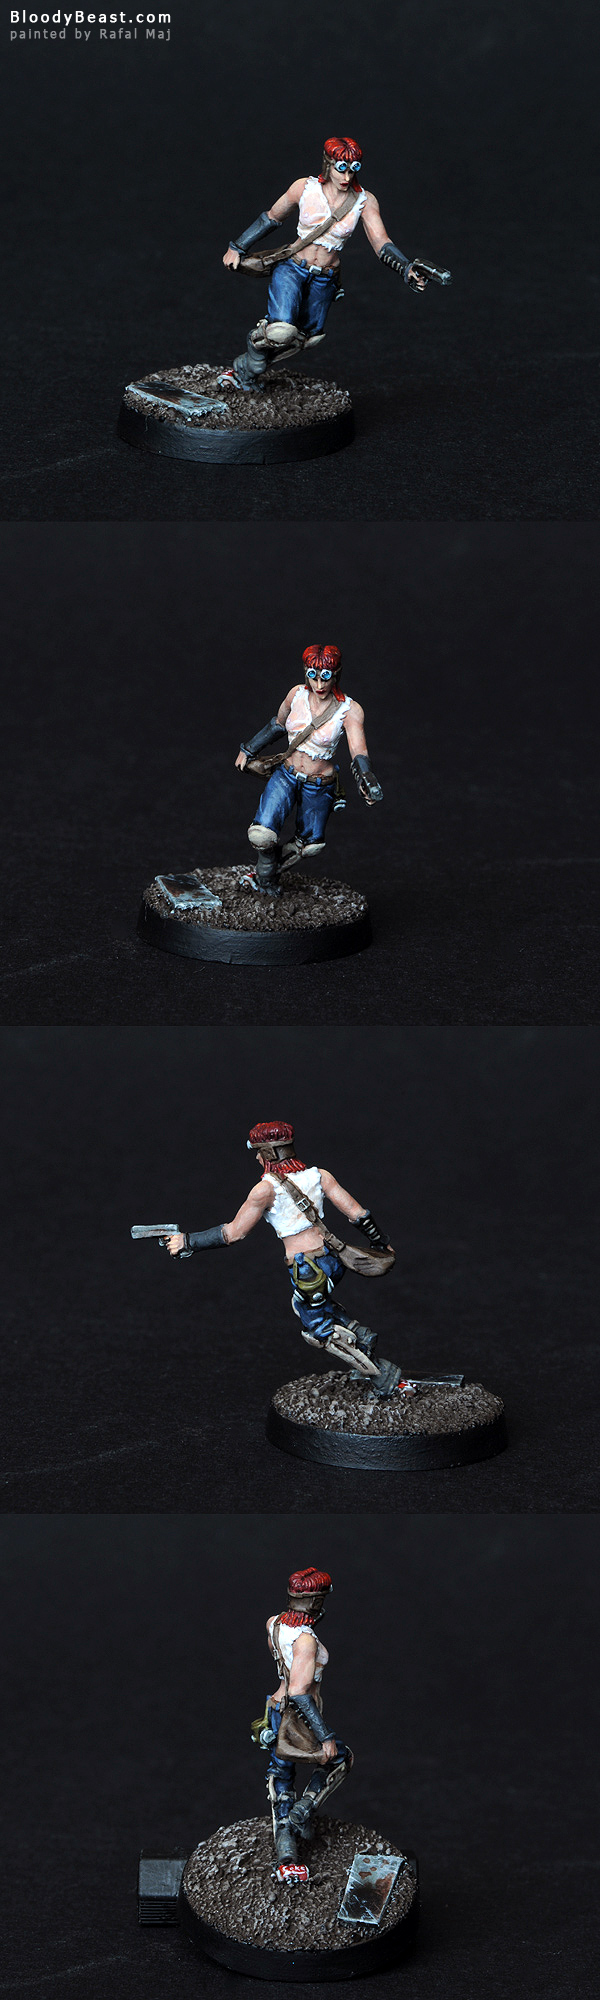 Courier painted by Rafal Maj (BloodyBeast.com)